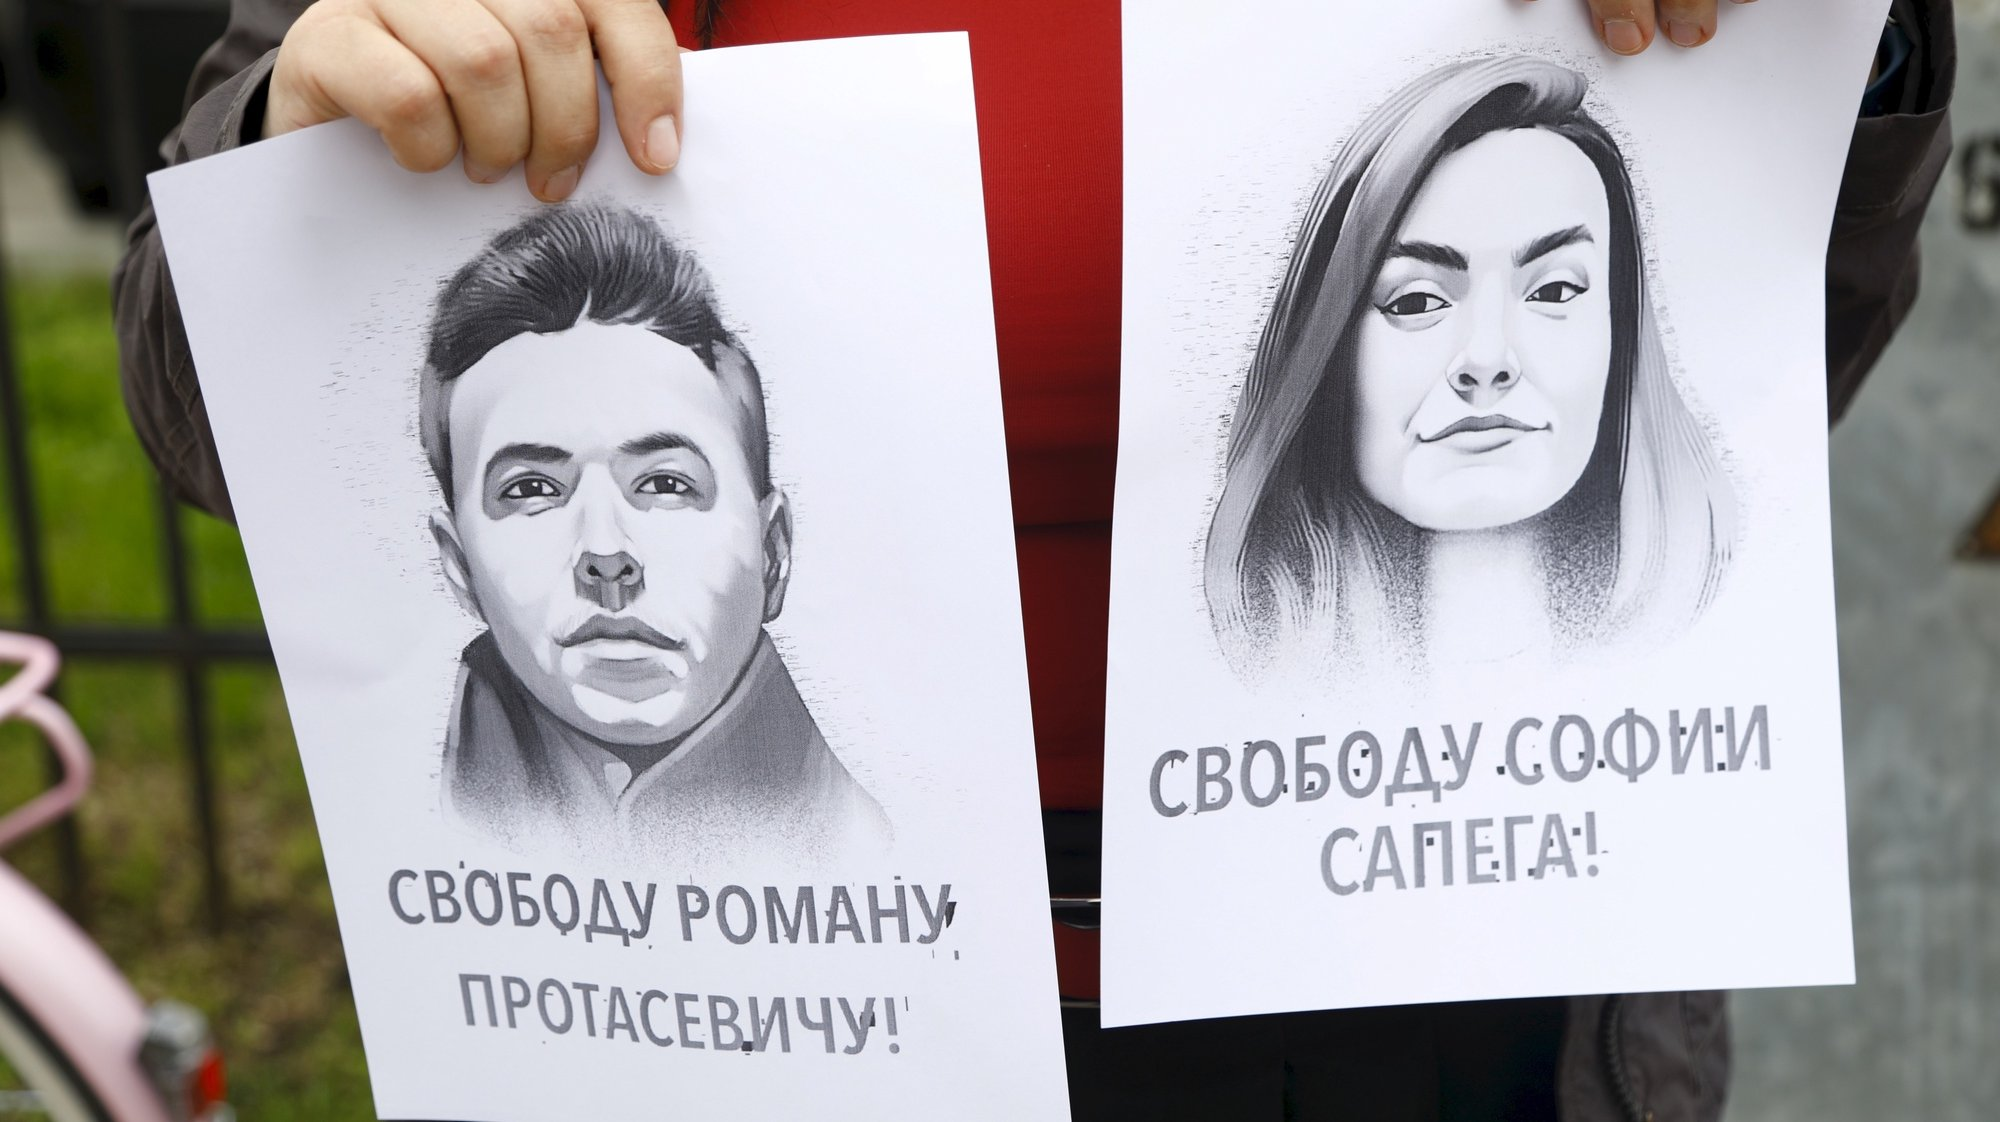 epa09226579 A woman holds a portrait of opposition journalist Roman Protasevich and his girlfriend Sofia Sapega during a protest of solidarity with Roman Protasevic at the Belarusian embassy in Riga, Latvia, 25 May 2021. Belarus' opposition journalist Roman Protasevich was detained by Belarusian Police on 23 May on a Ryanair flight from Athens to Vilnius, that was forced to land in Minsk.  EPA/TOMS KALNINS